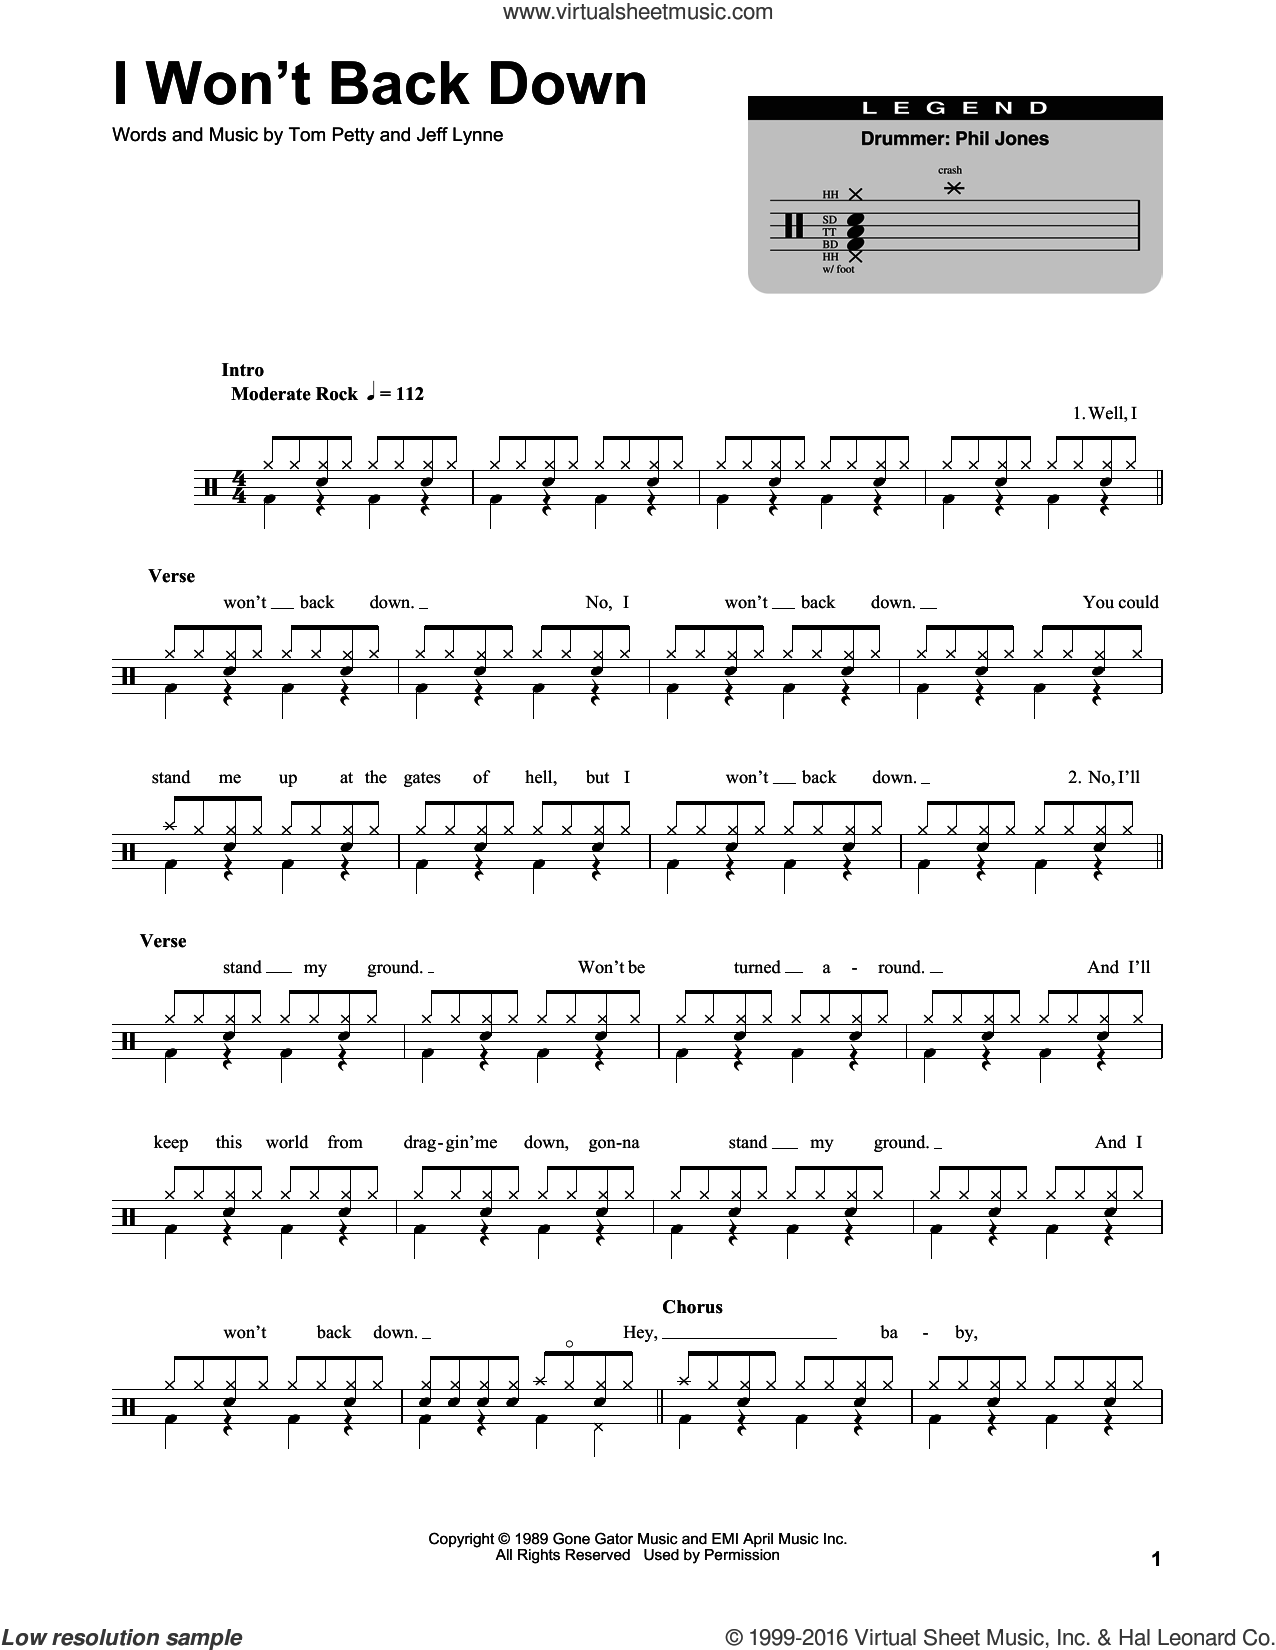 I Won't Back Down sheet music for drums by Jeff Lynne